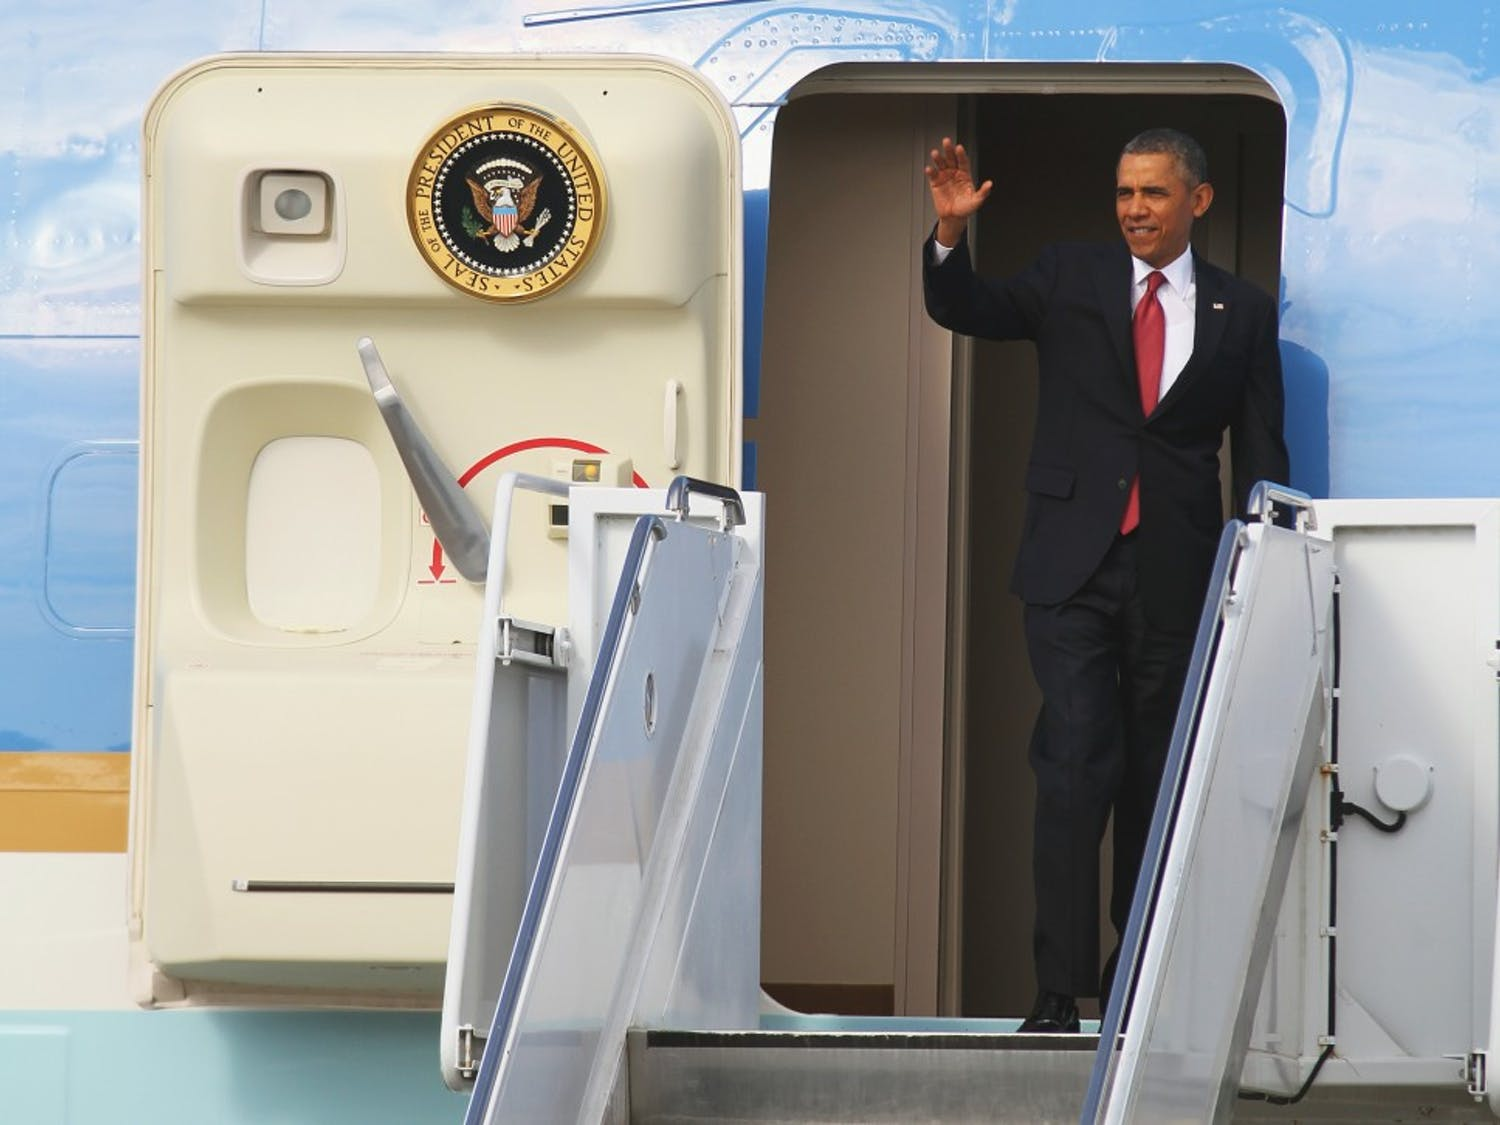 President Barack Obama exits Air Force One on Wednesday January 15.